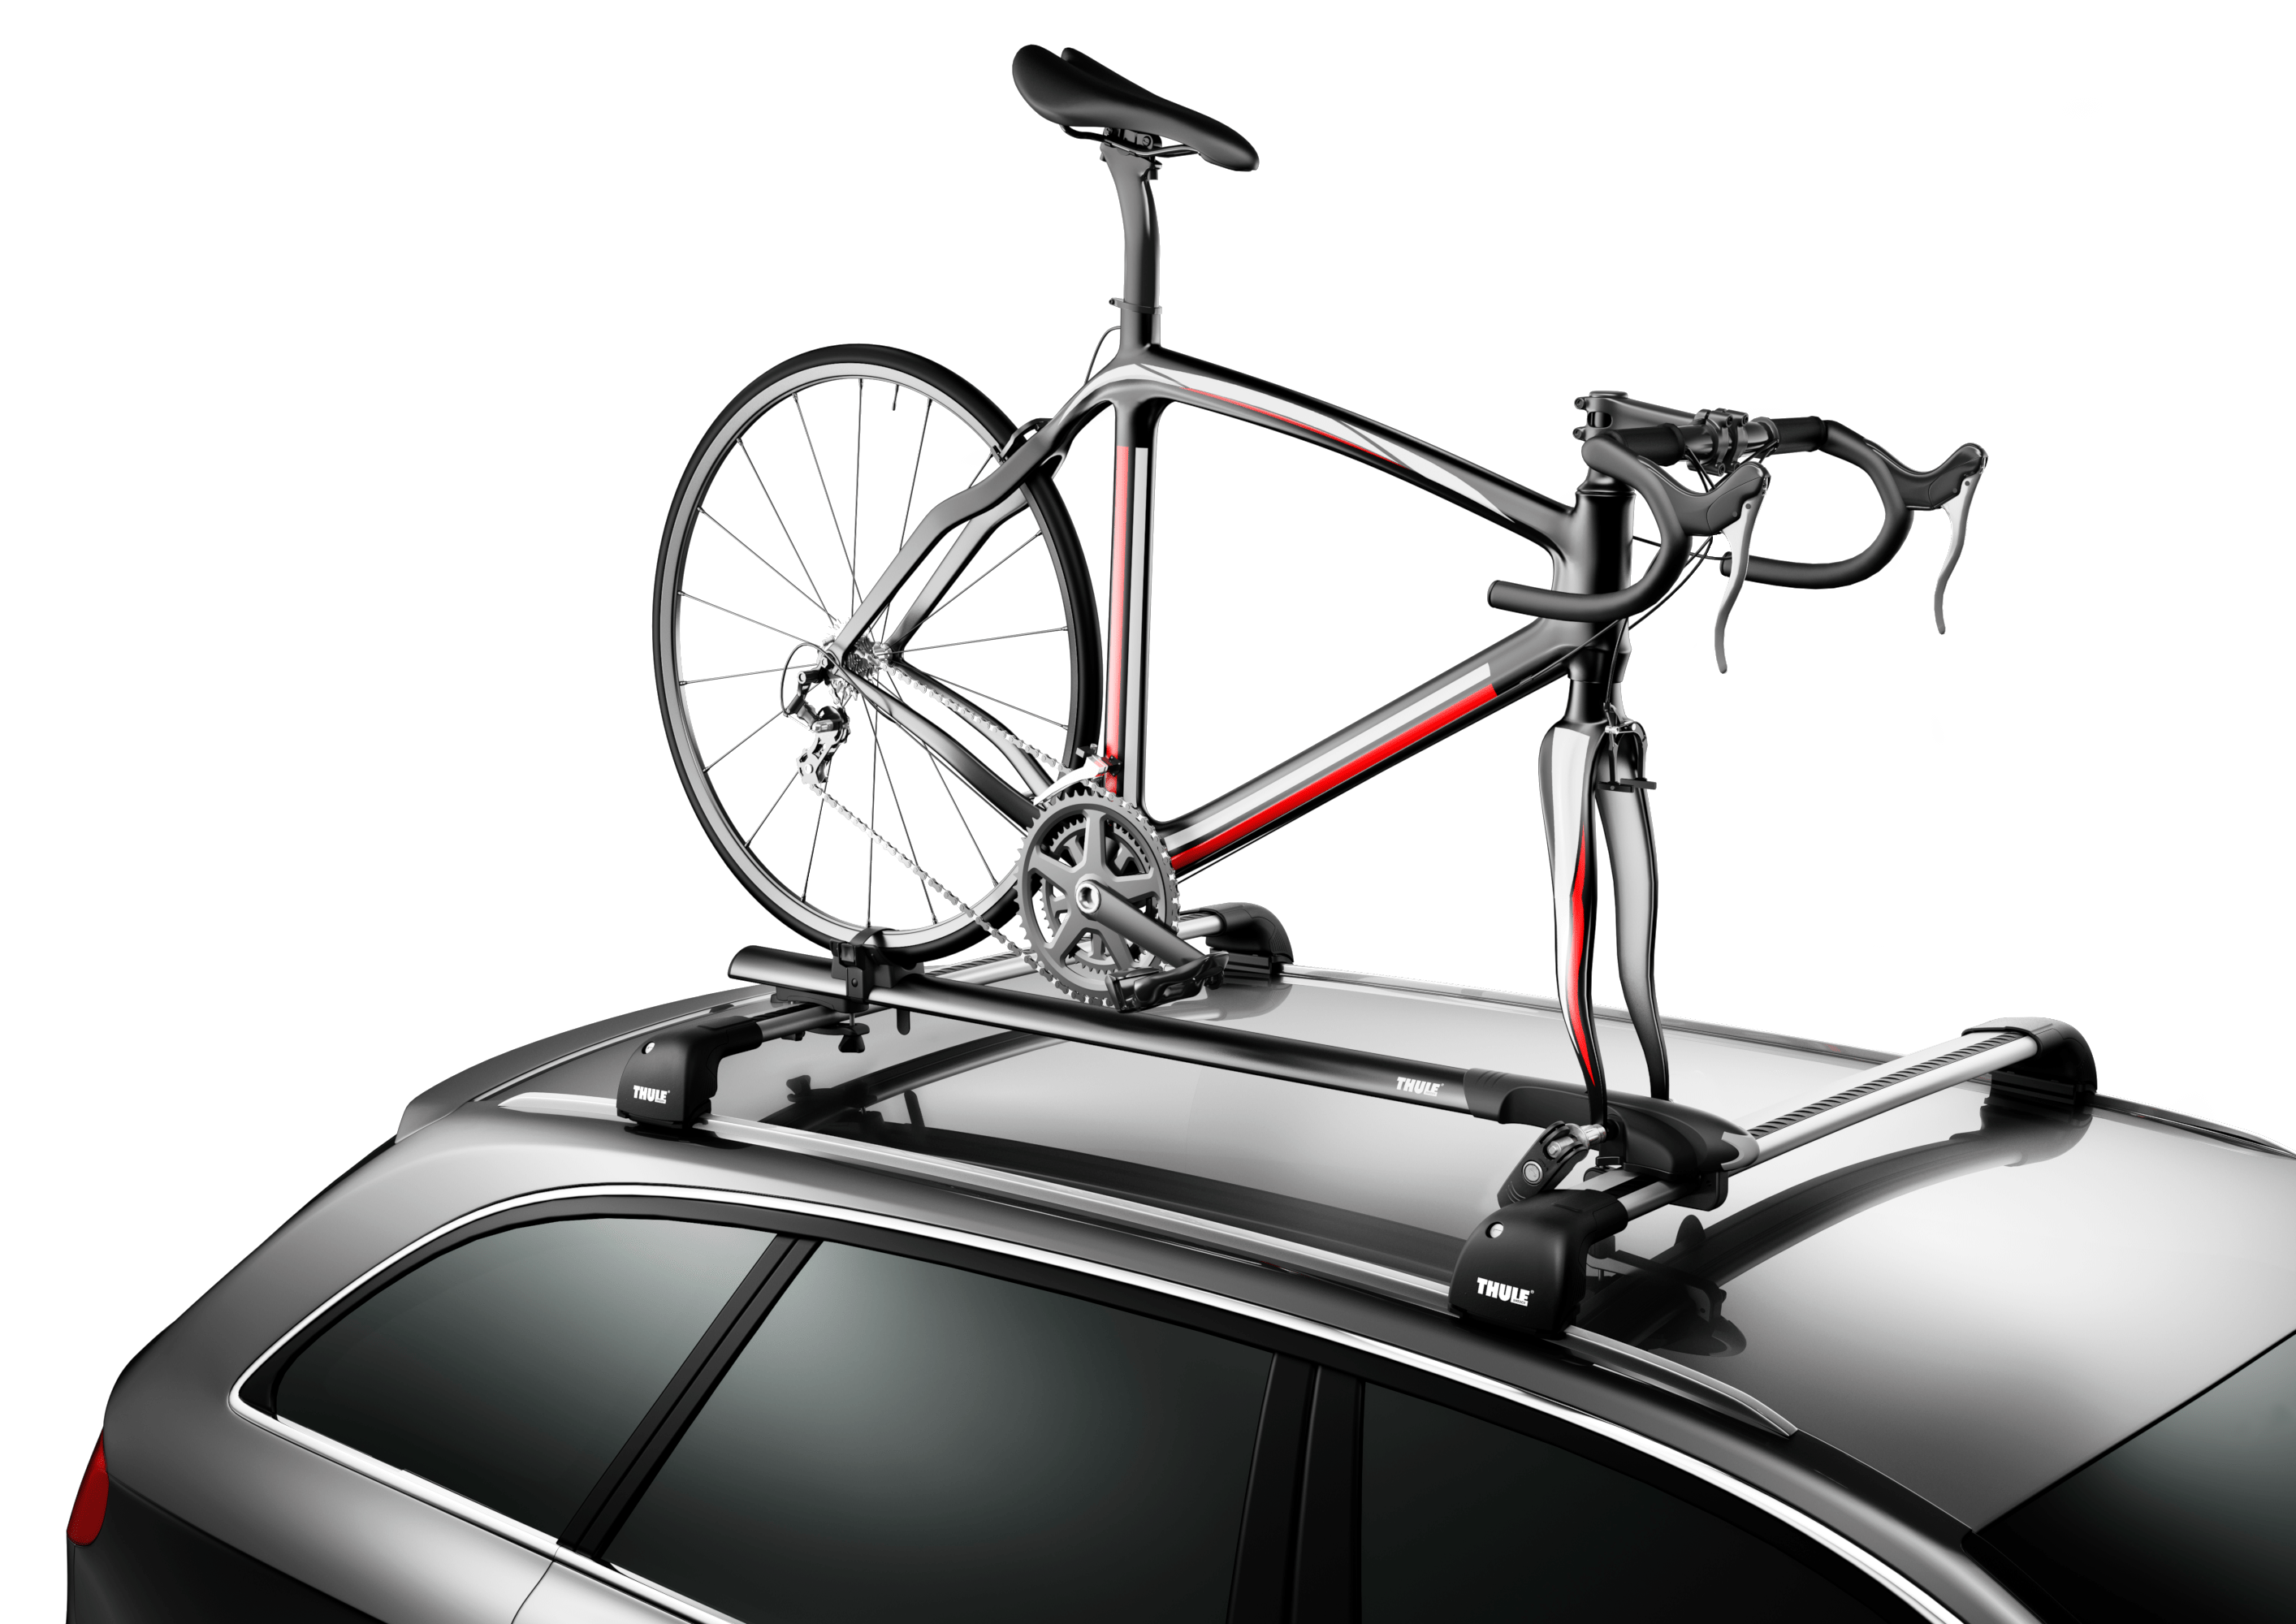 thule roof bike rack, thule roof bike racks, thule circuit bike rack